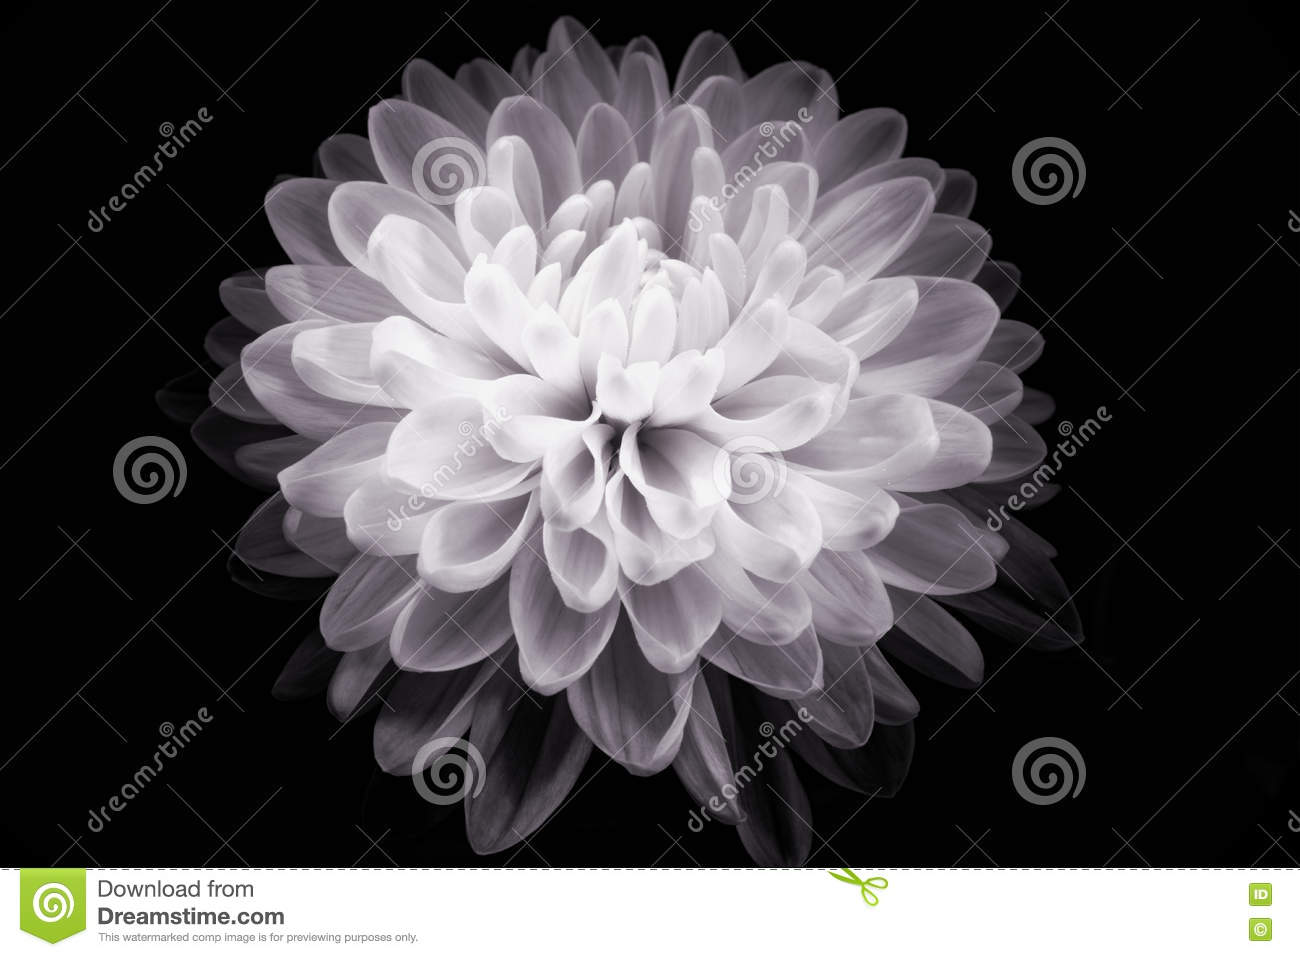 Flower Black And White Stock Photo Image Of Painting 70378918